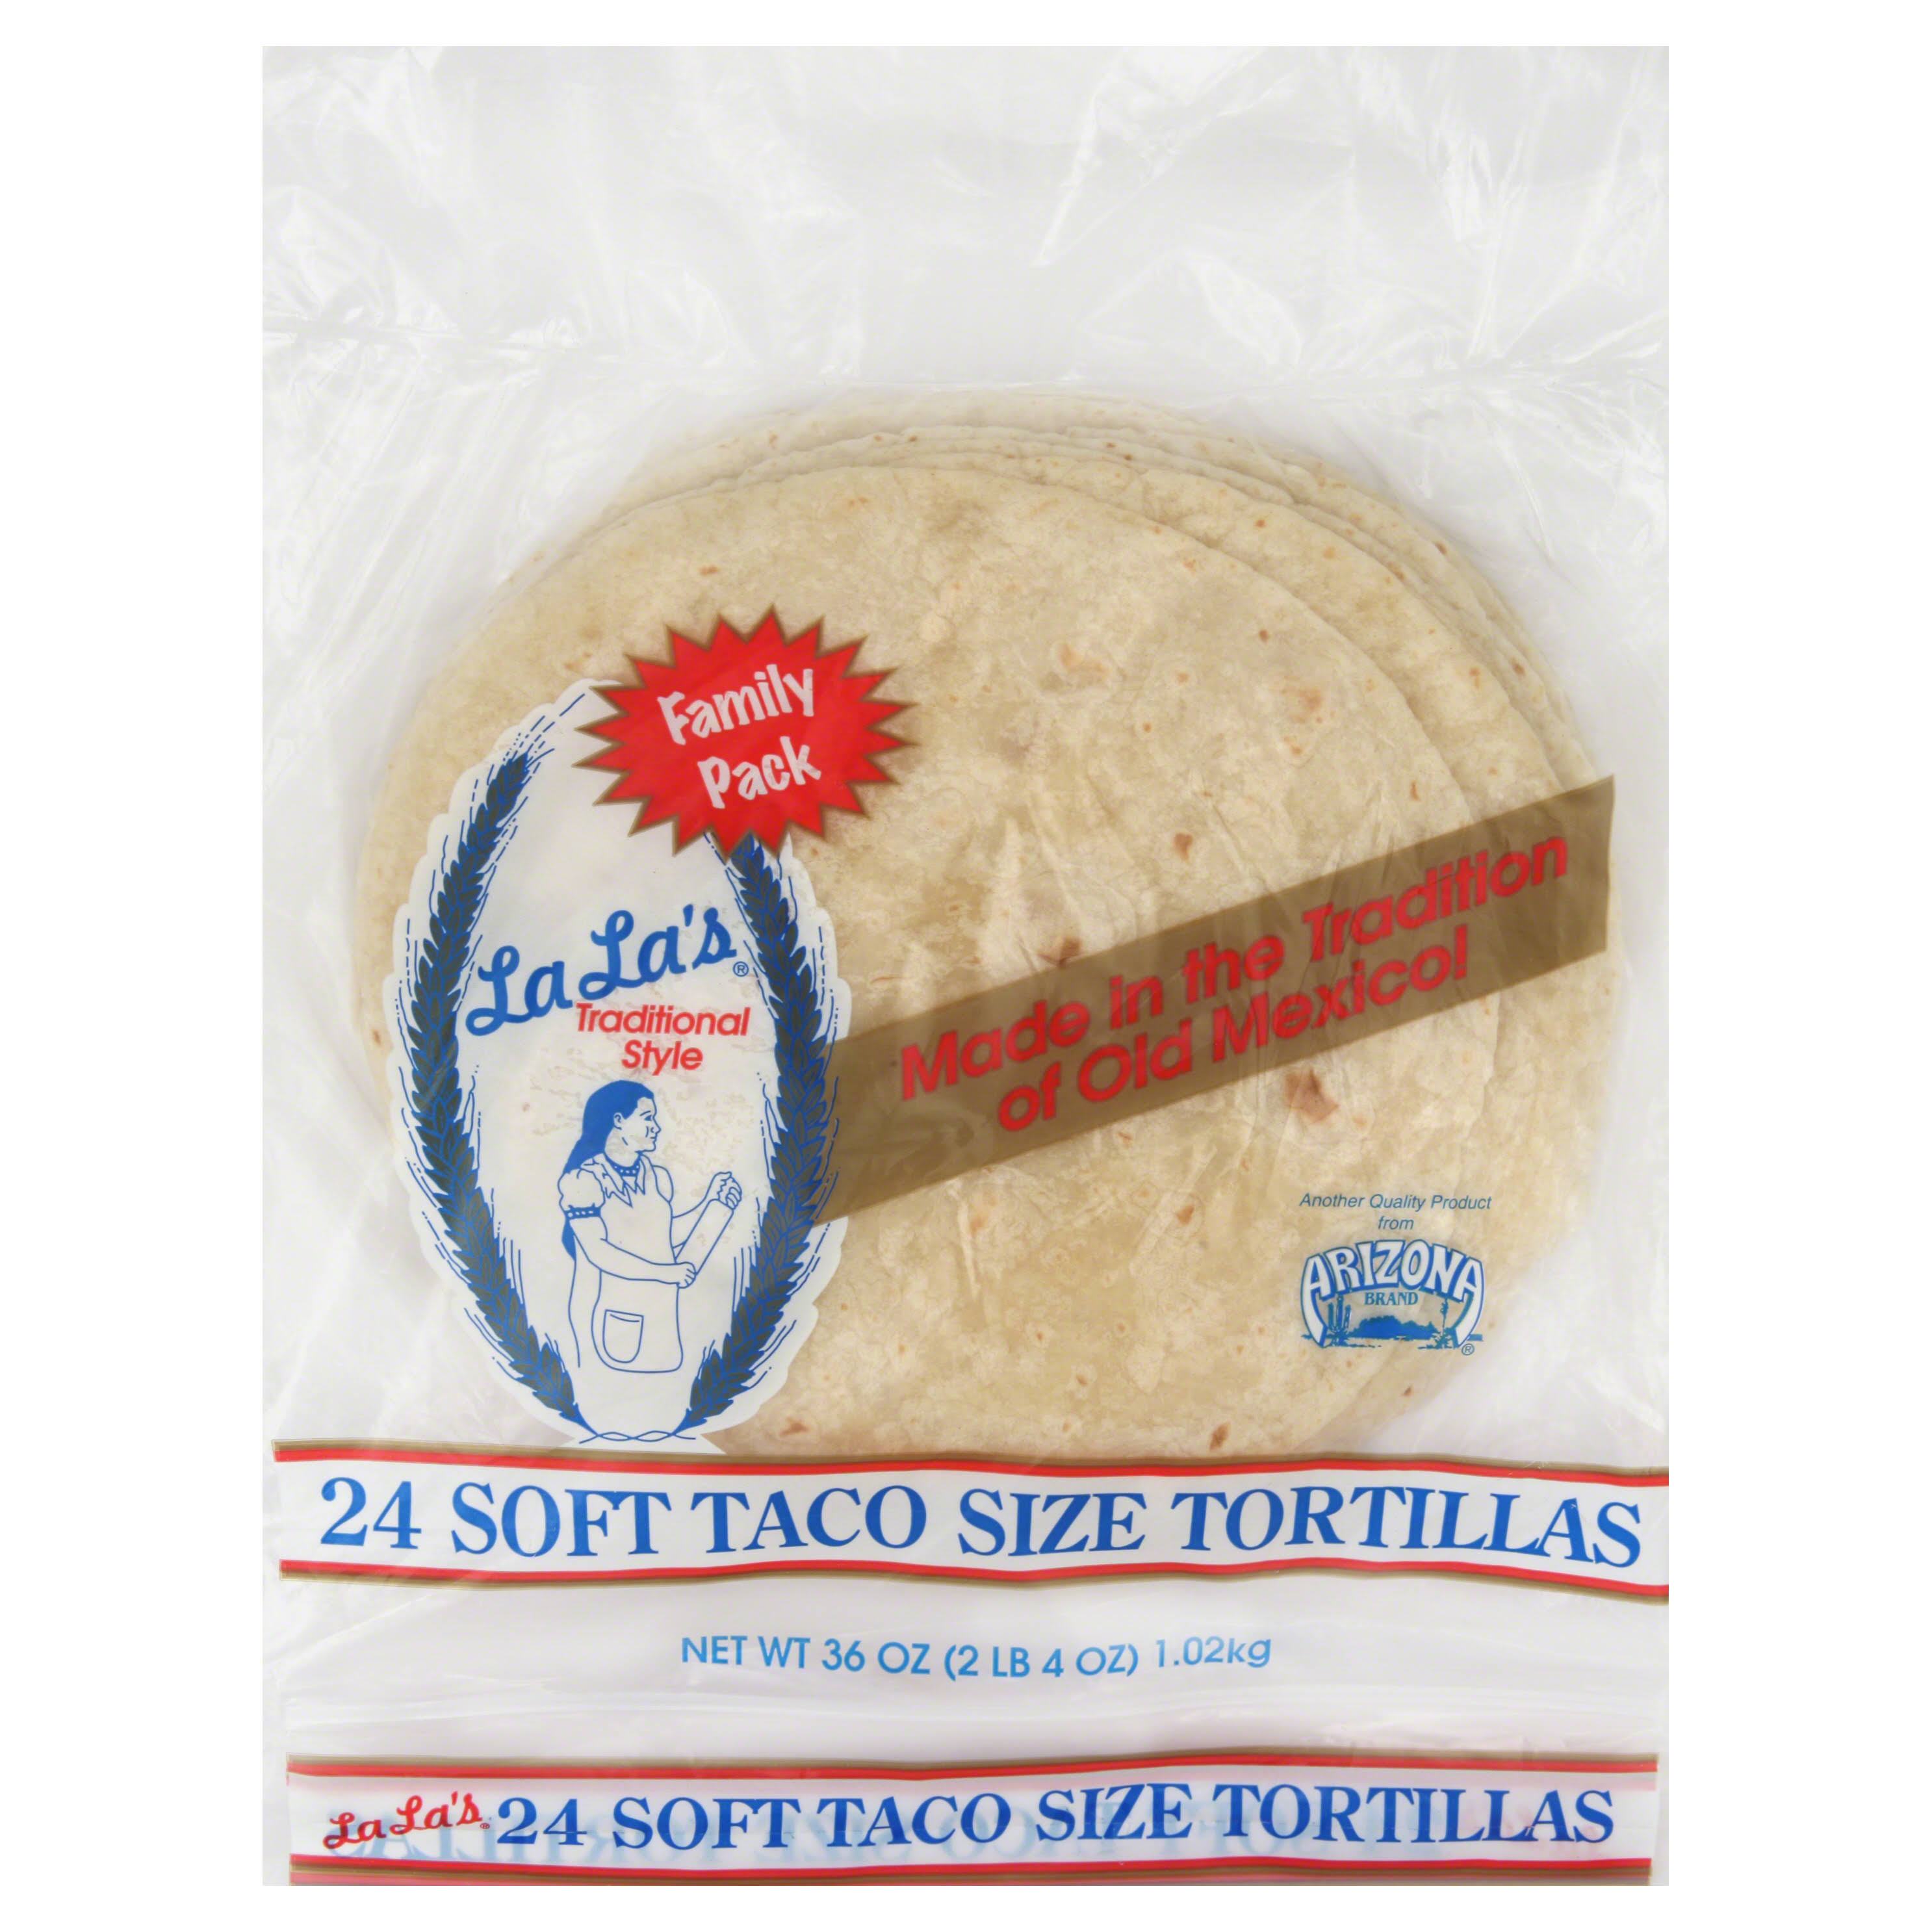 La Las Tortillas, Soft Taco Size, Family Pack - 24 tortillas, 36 oz